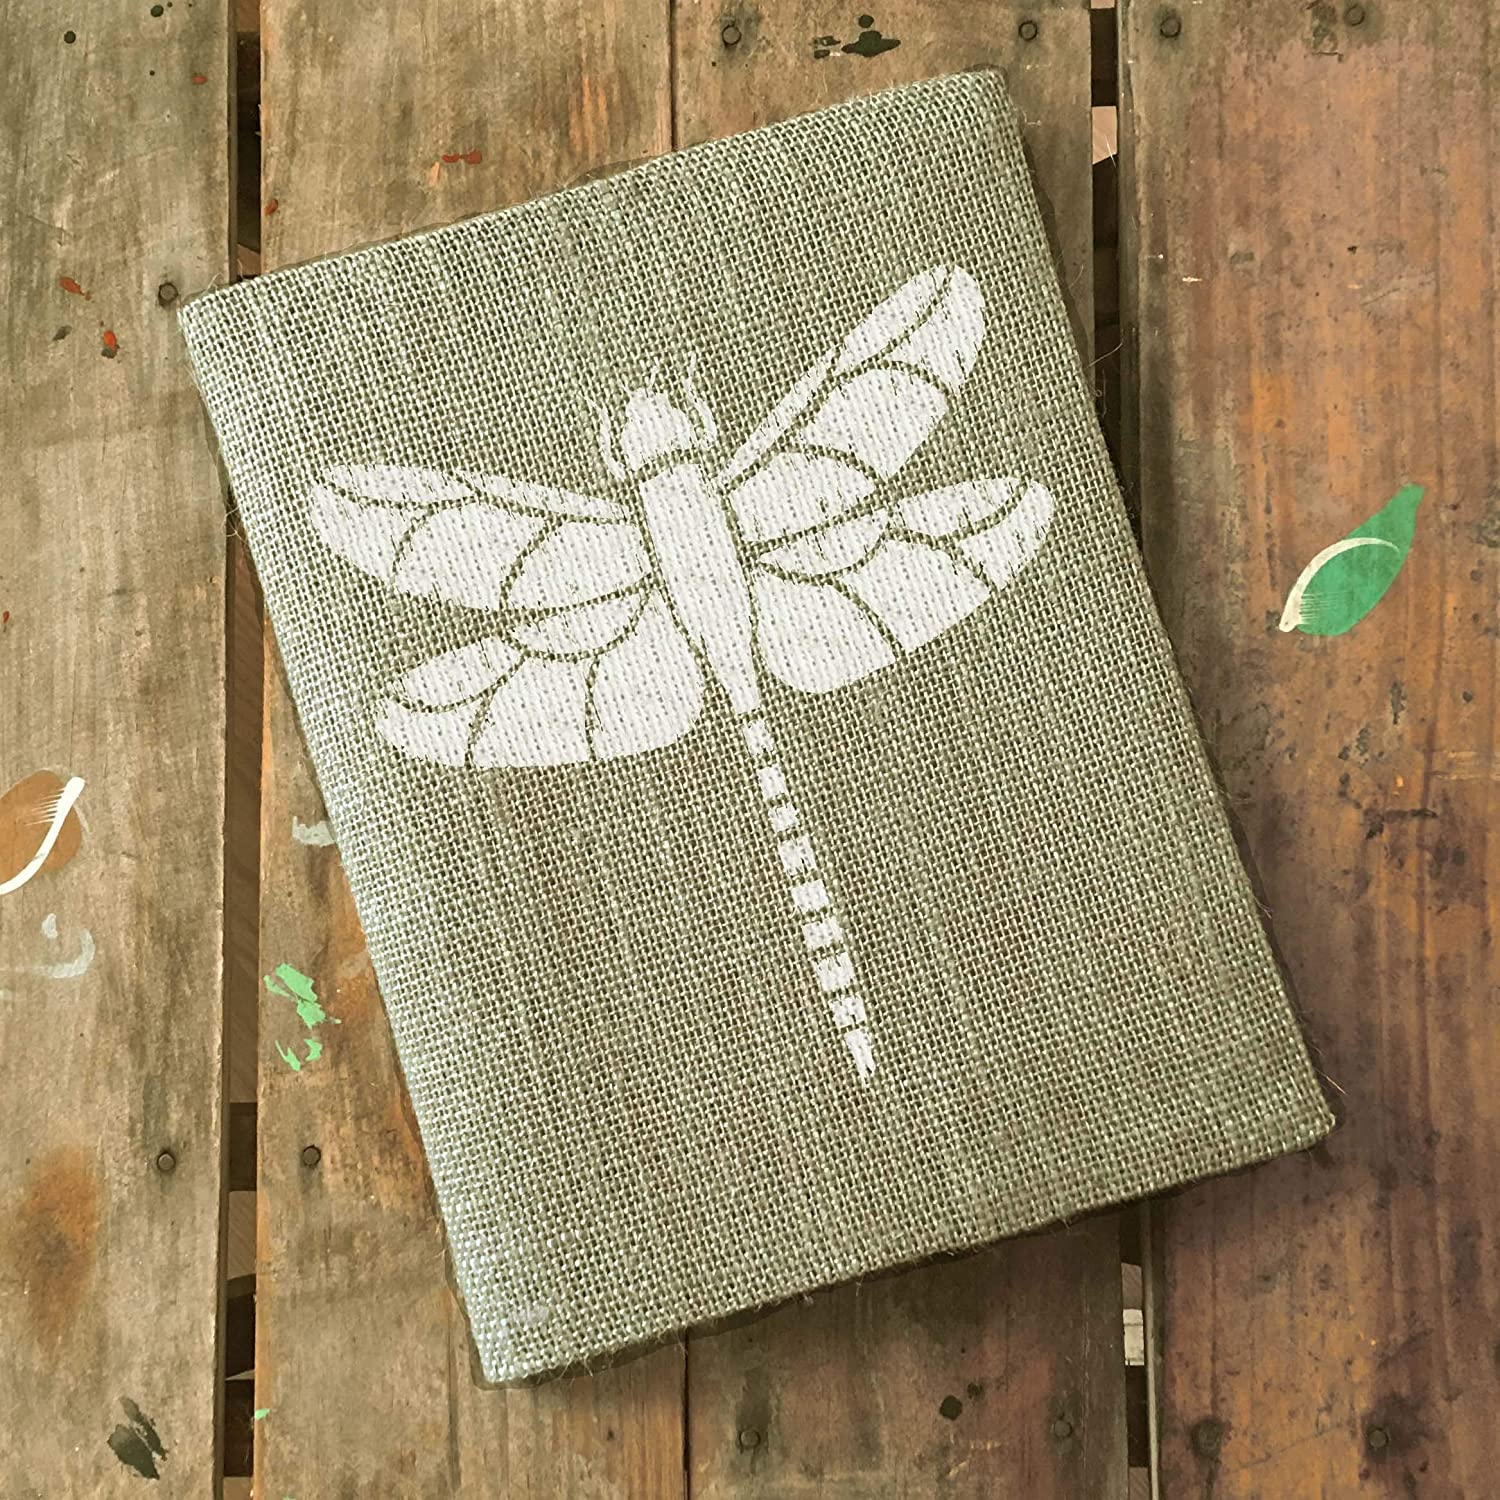 Dragonfly Burlap Journal Cover Composition Notebook Included 9.75 x 7.5